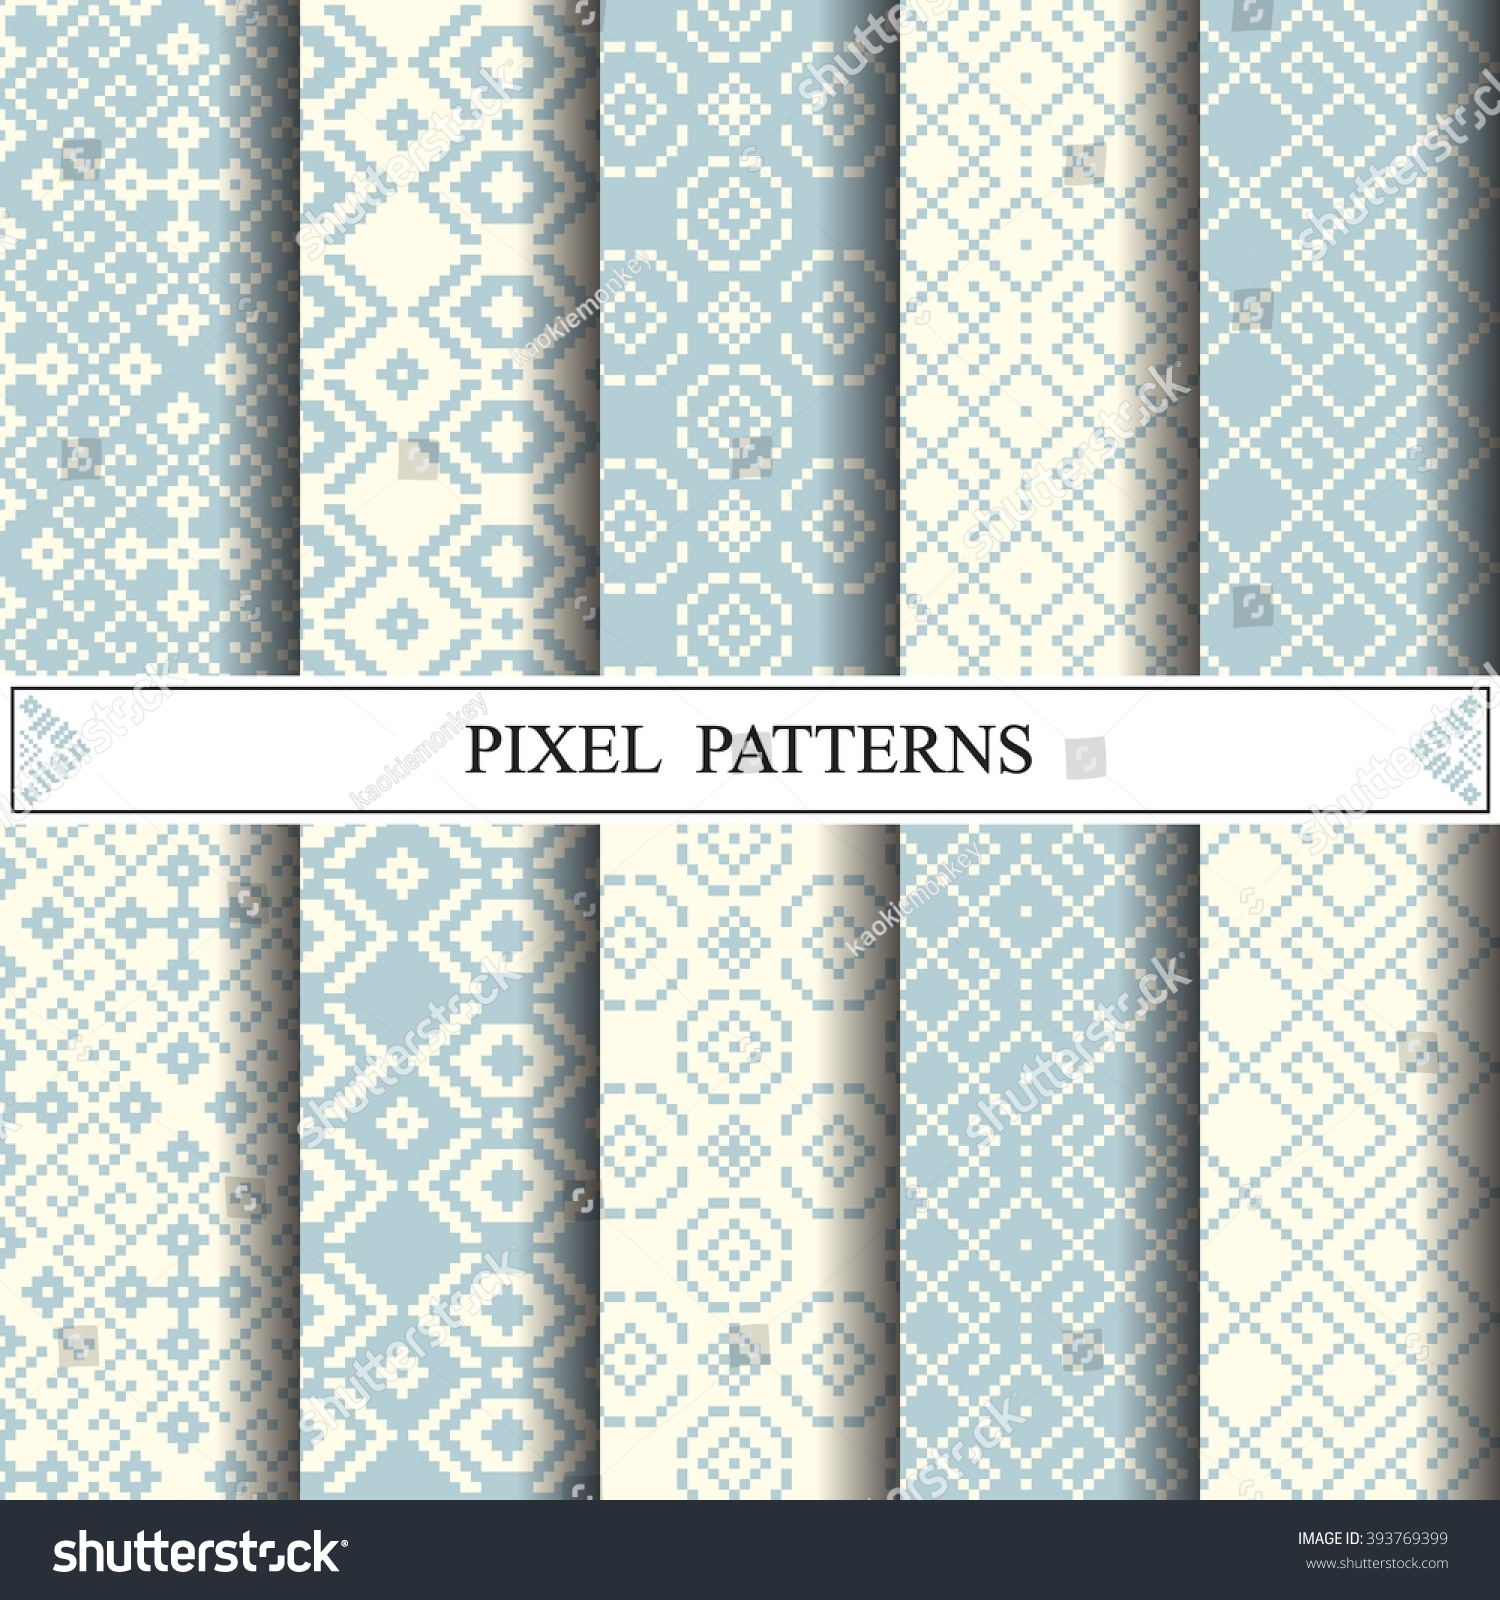 Wallpapers pattern fills web page backgrounds surface textures - Thai Pixel Pattern Thai Textile Pattern Fills Web Page Background Surface Textures